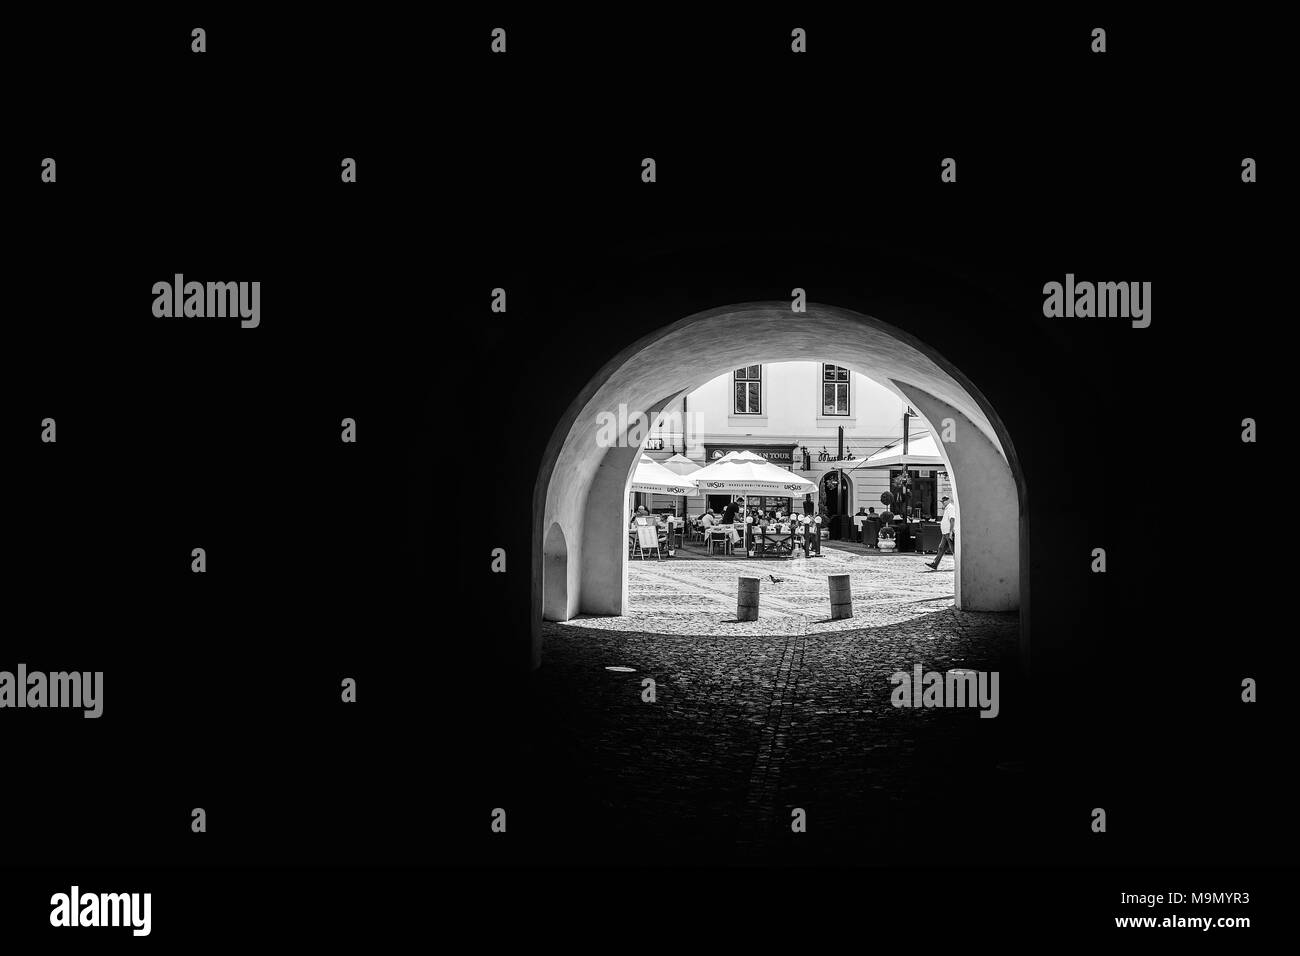 A passage in old town, Sibiu, Romania. - Stock Image